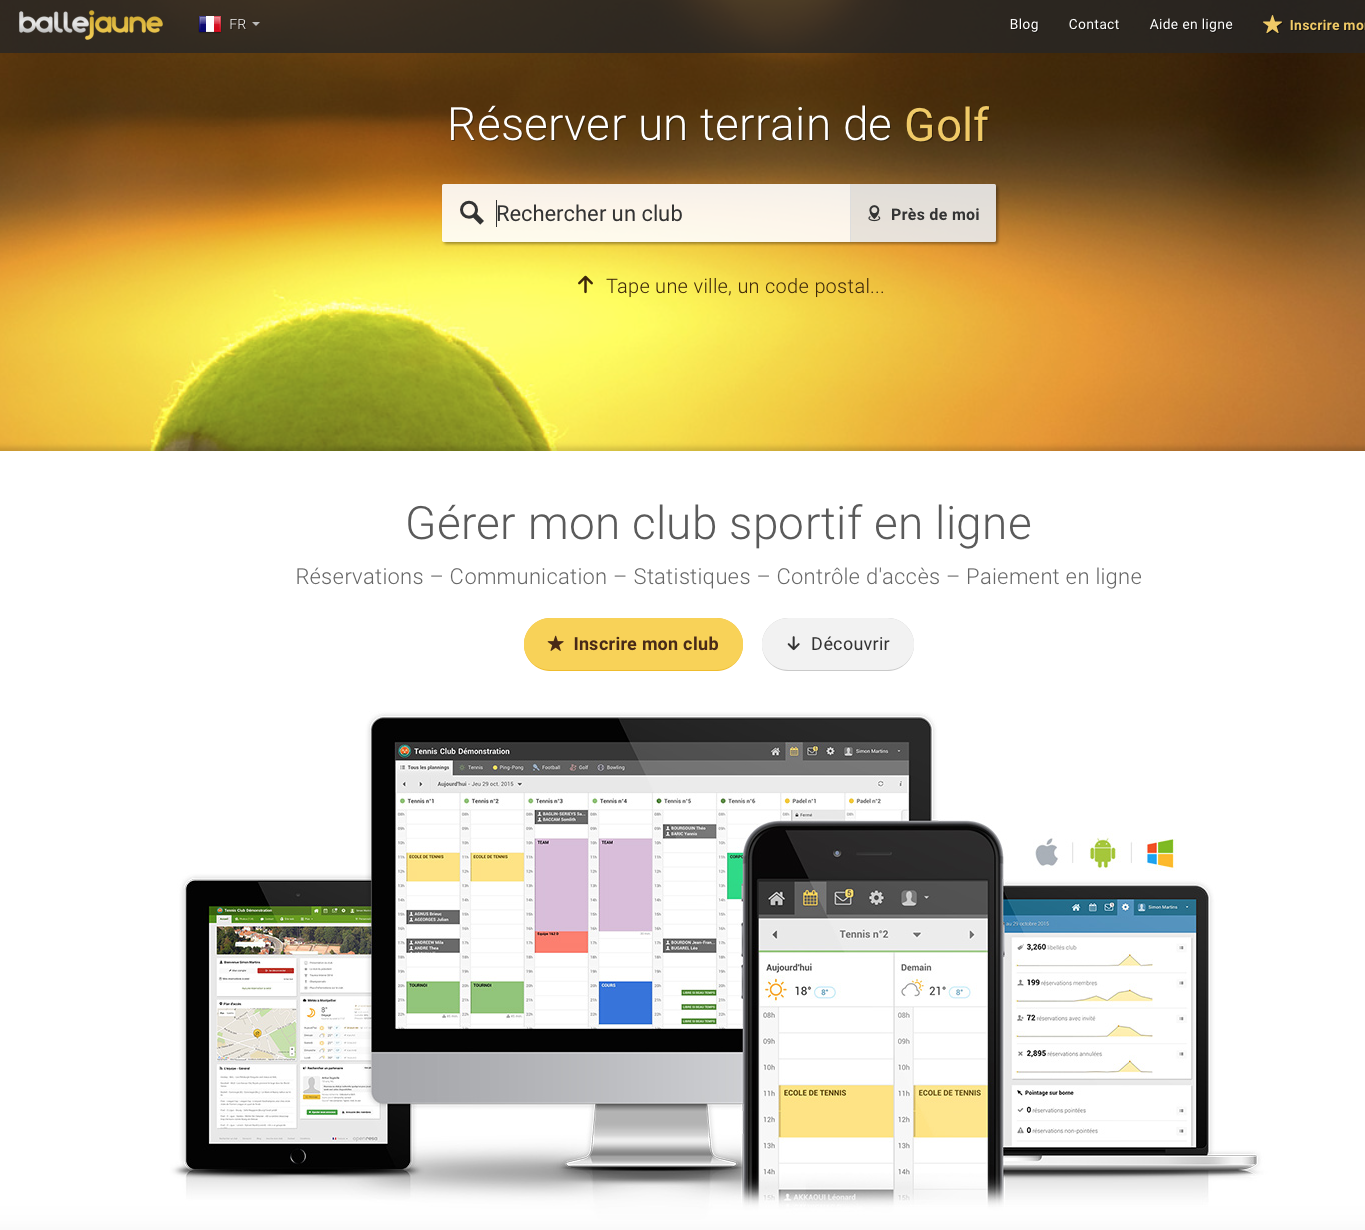 Traduction du site ballejaune.com